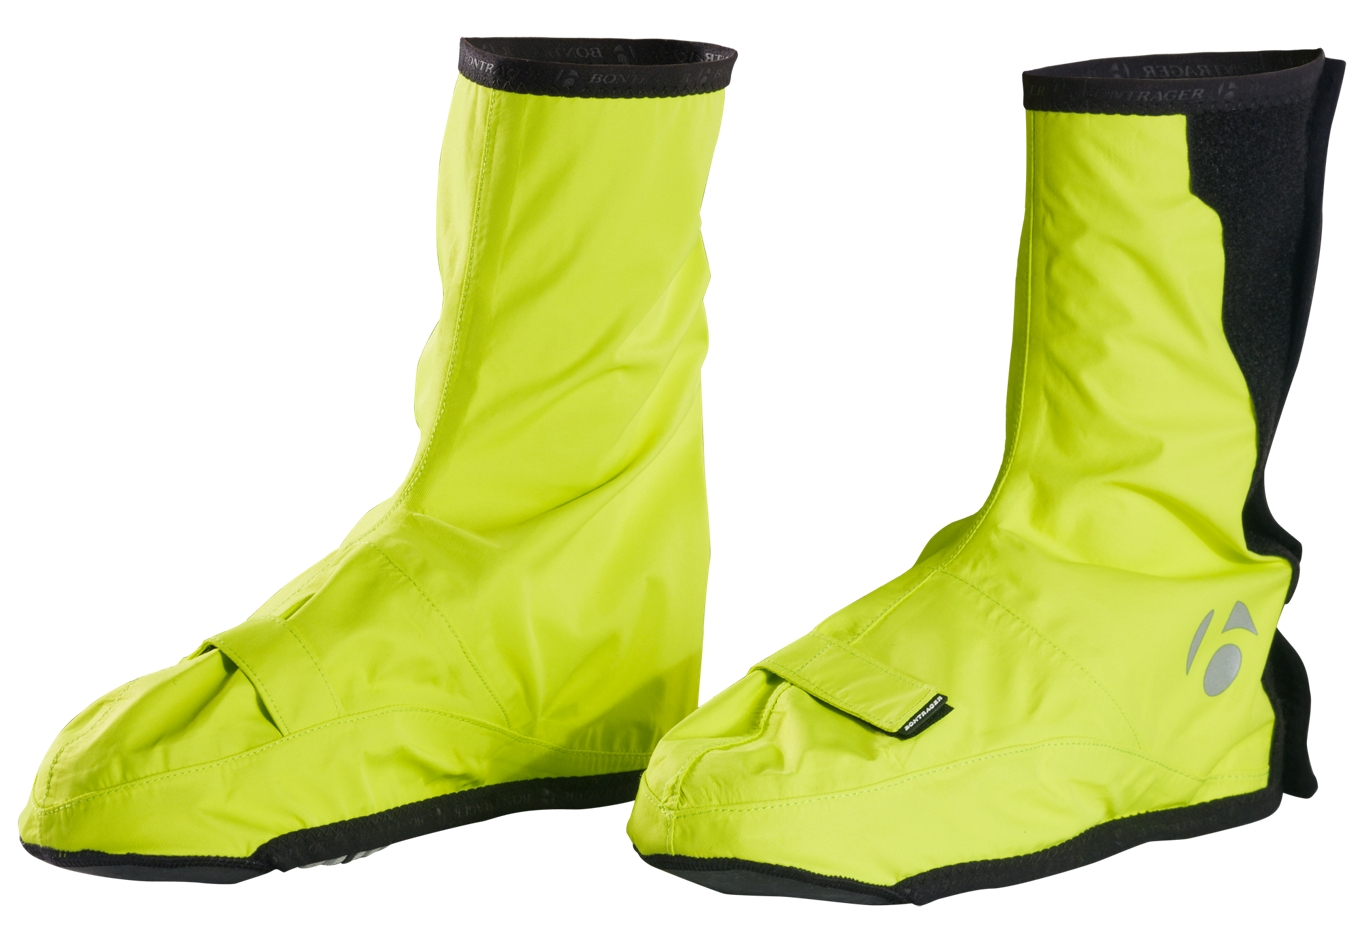 Bontrager Halo S1 Softshell Shoe Cover Unisex Visibility Yellow S